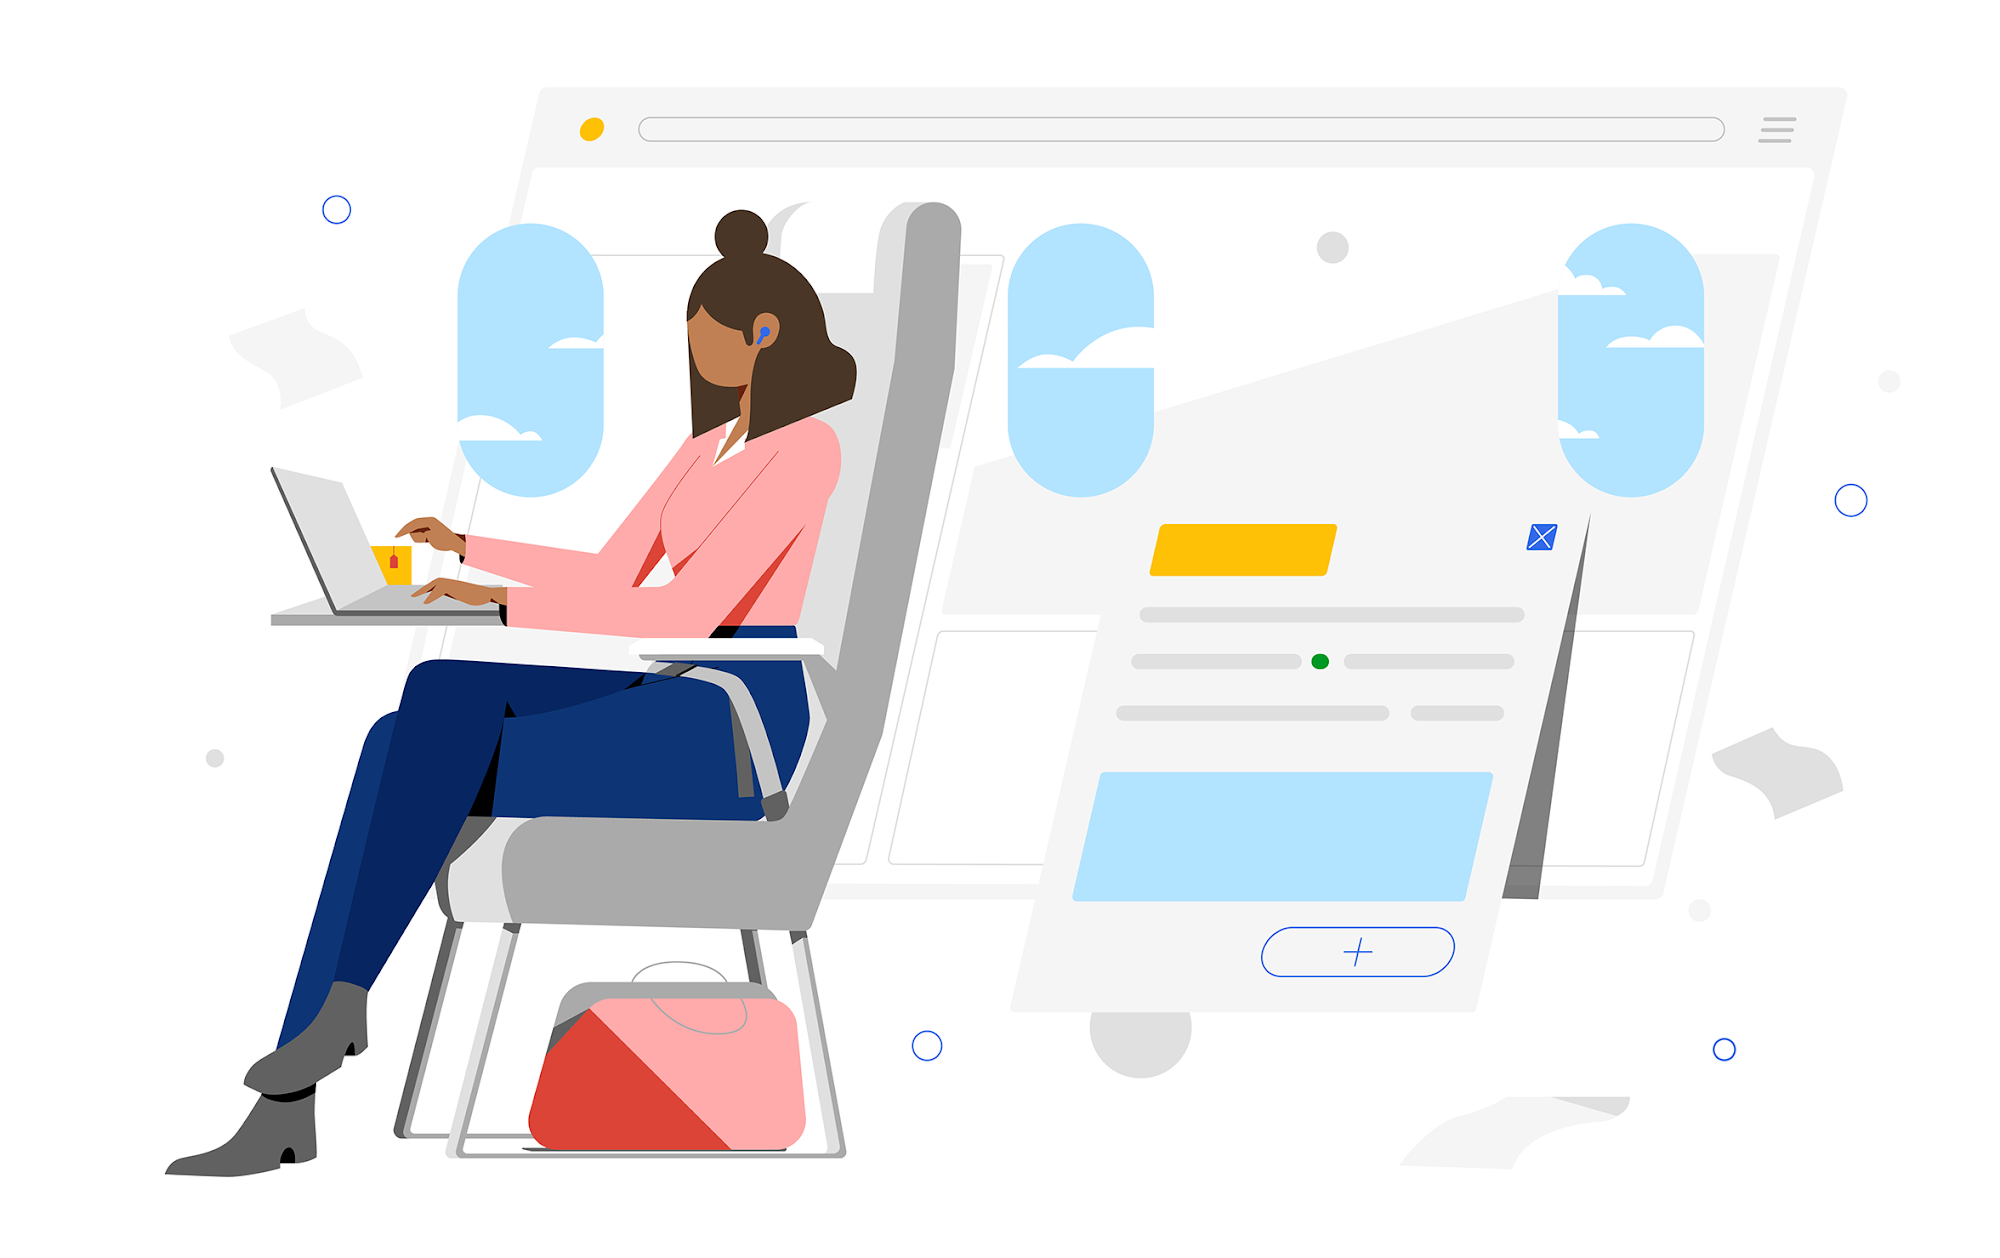 Woman seated on airplane works on her laptop